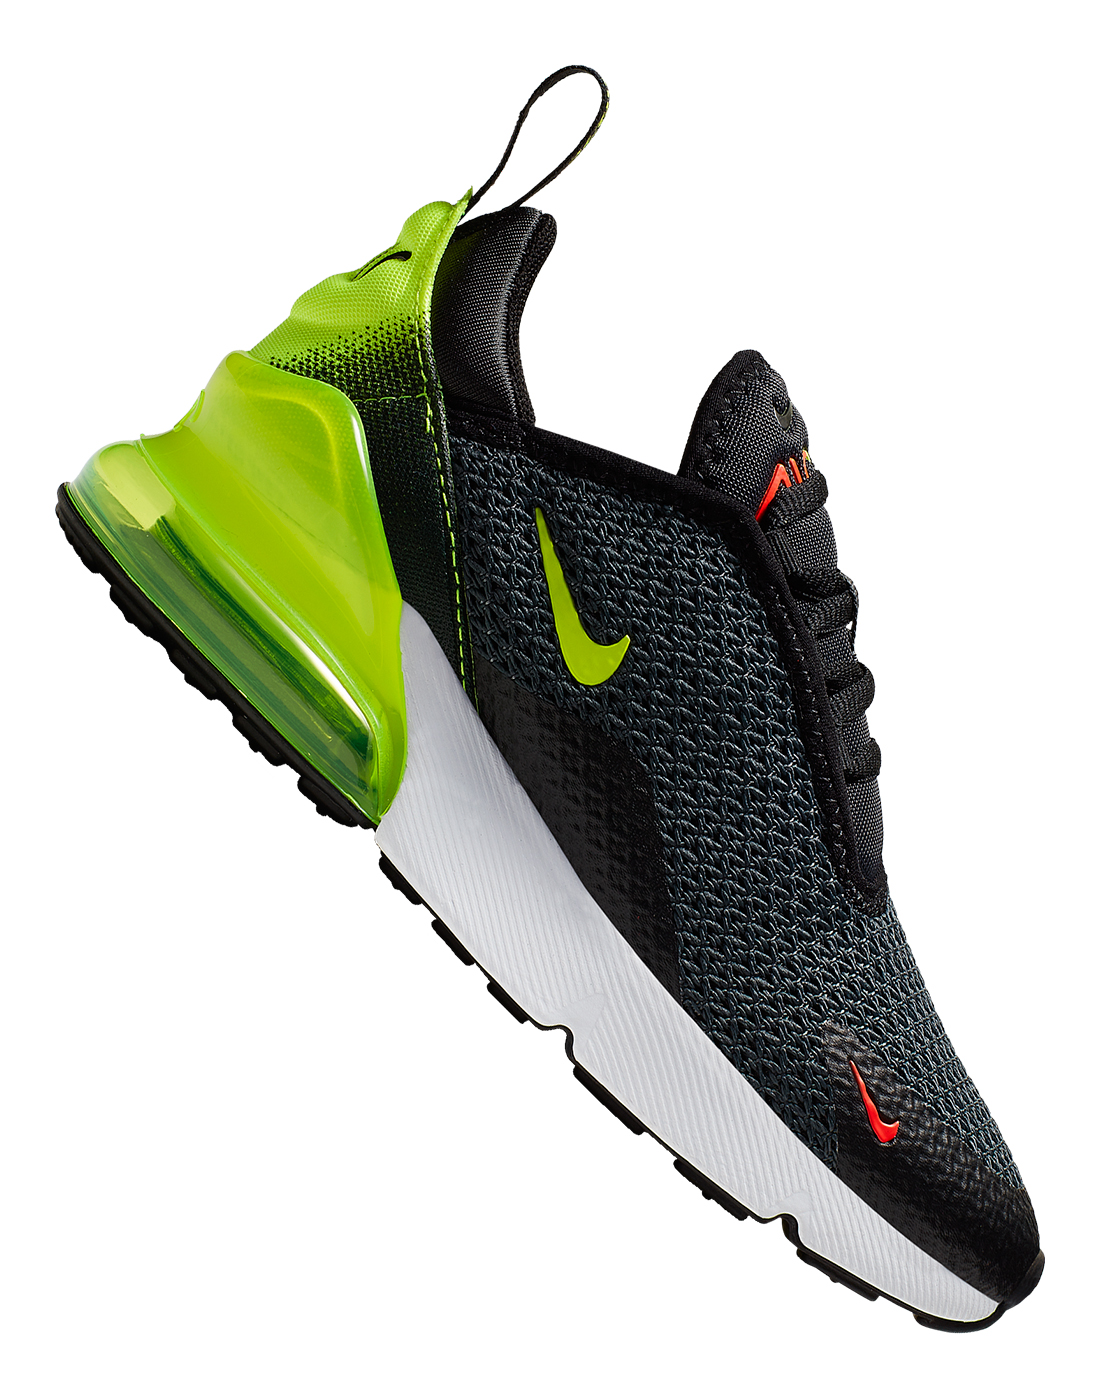 uk availability dc329 348b4 Younger Kids Air Max 270